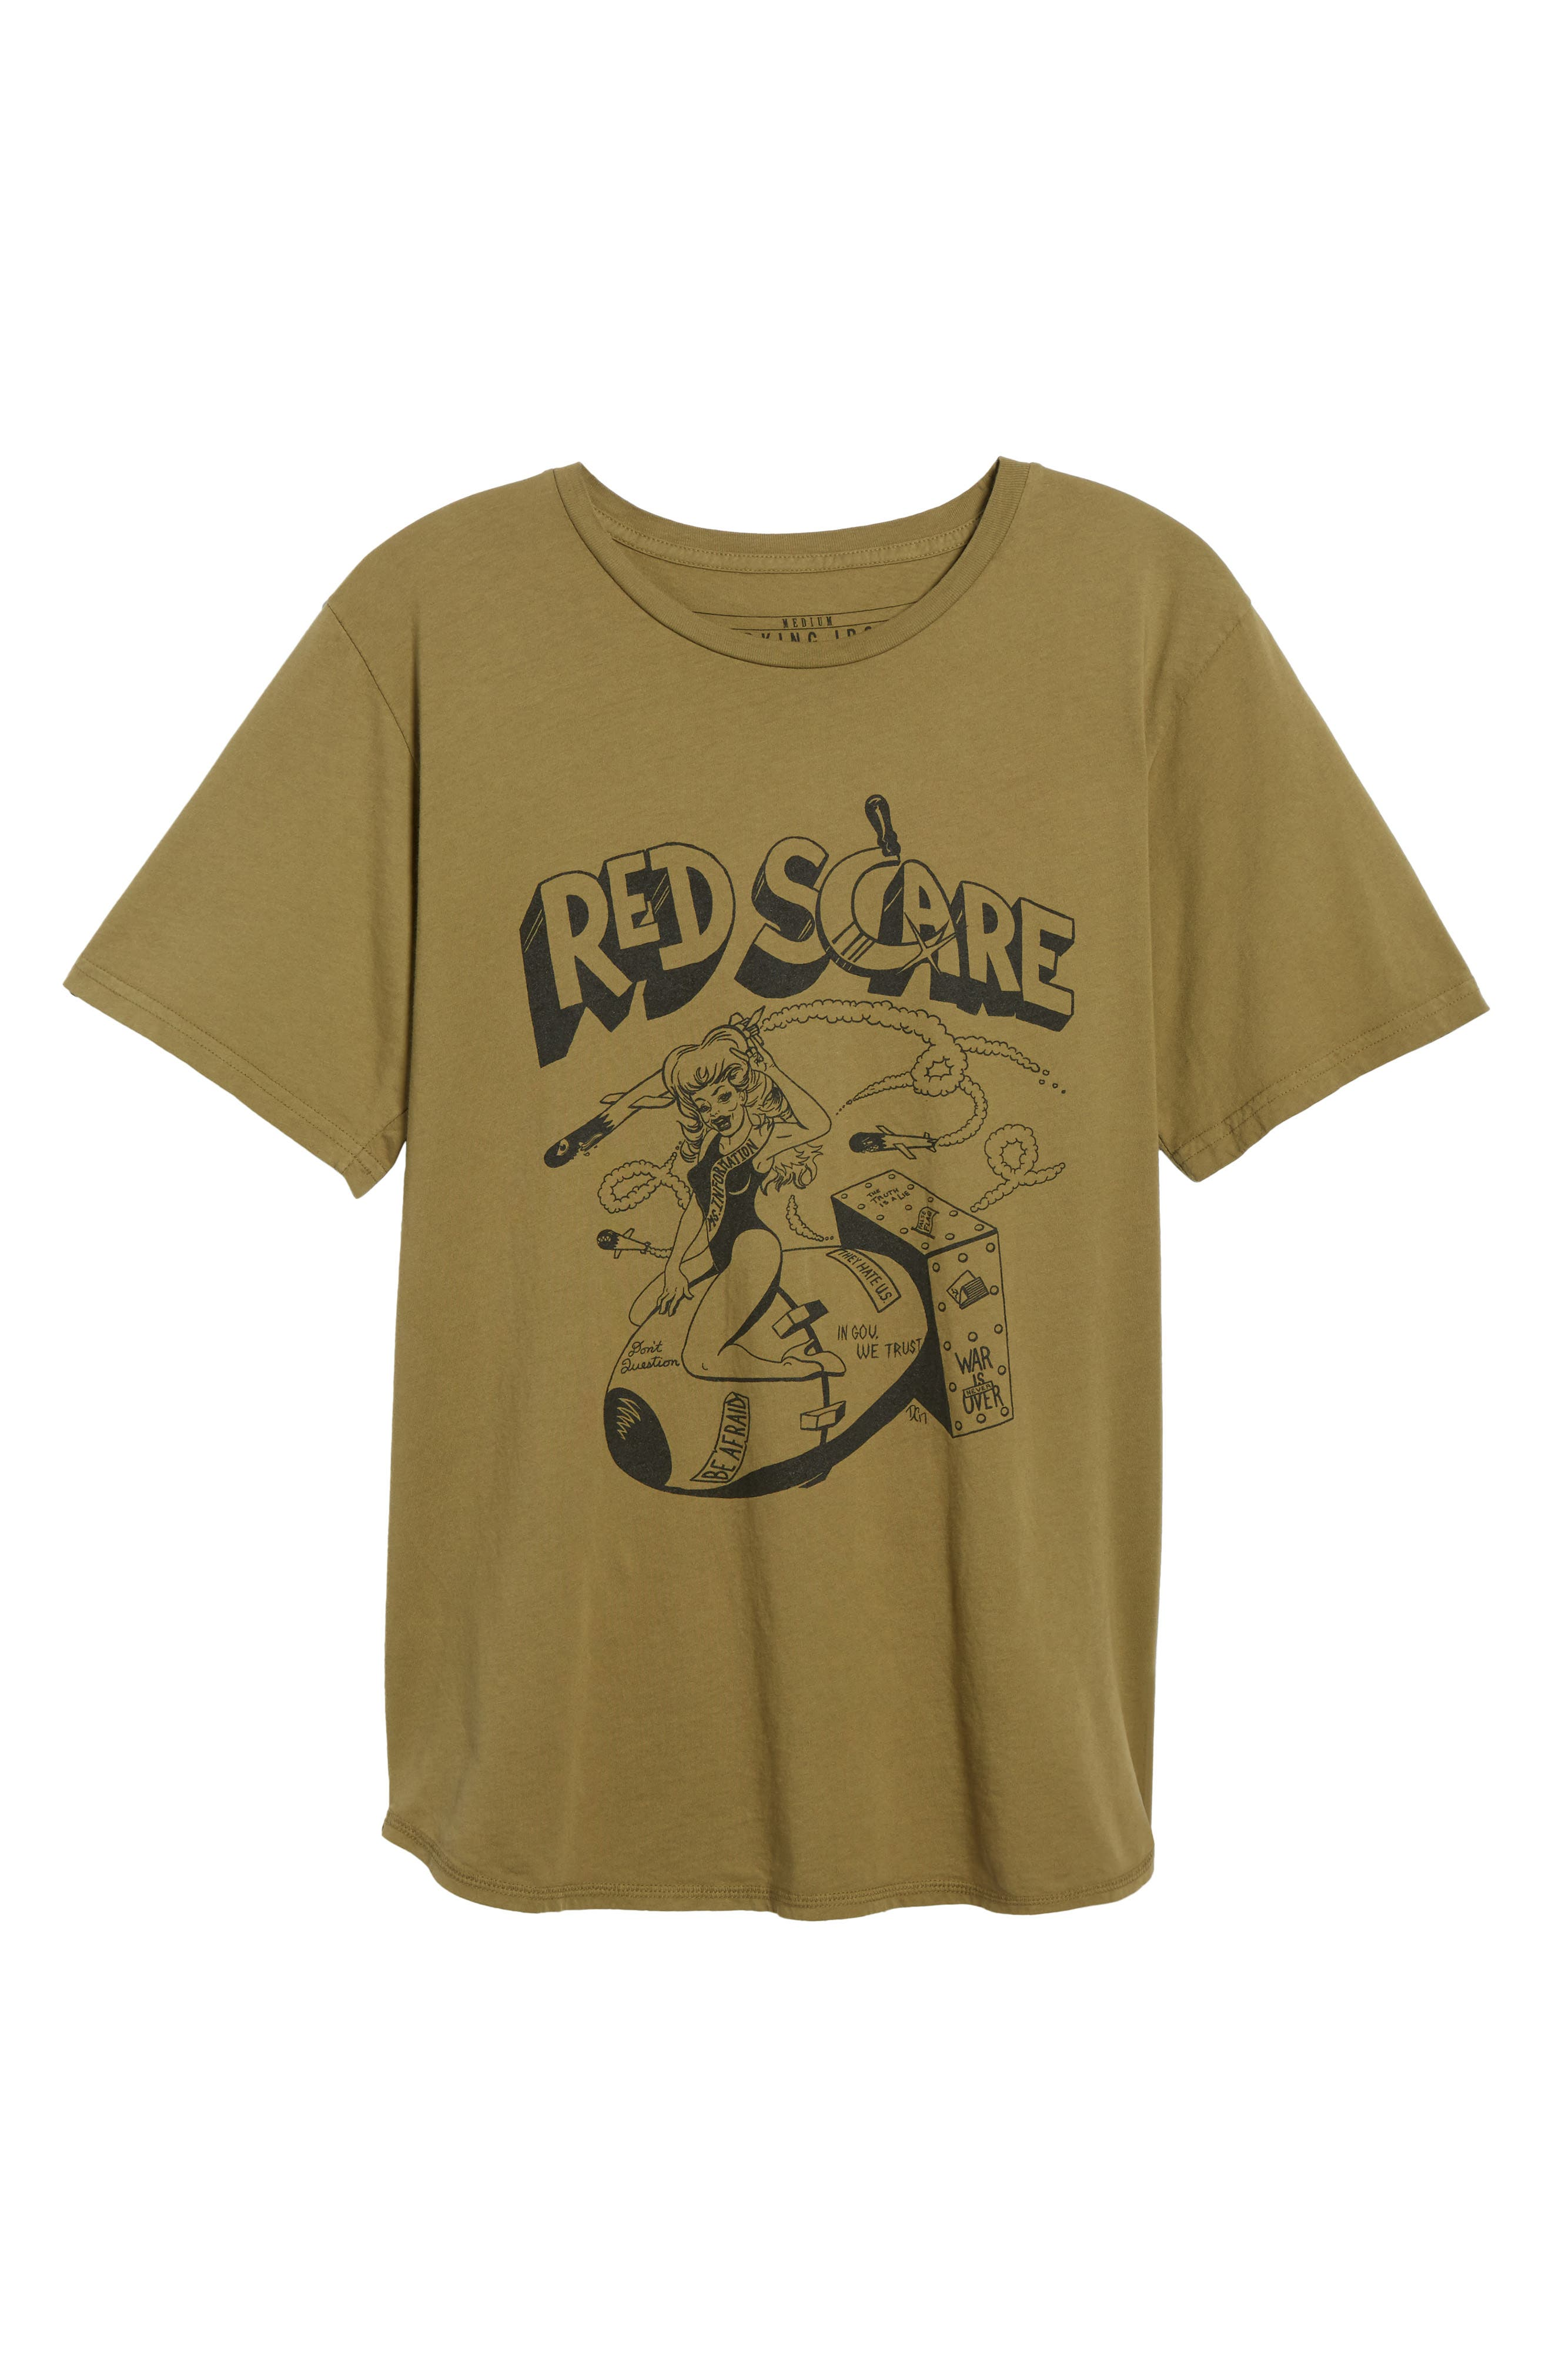 Red Scare Graphic T-Shirt,                             Alternate thumbnail 6, color,                             300